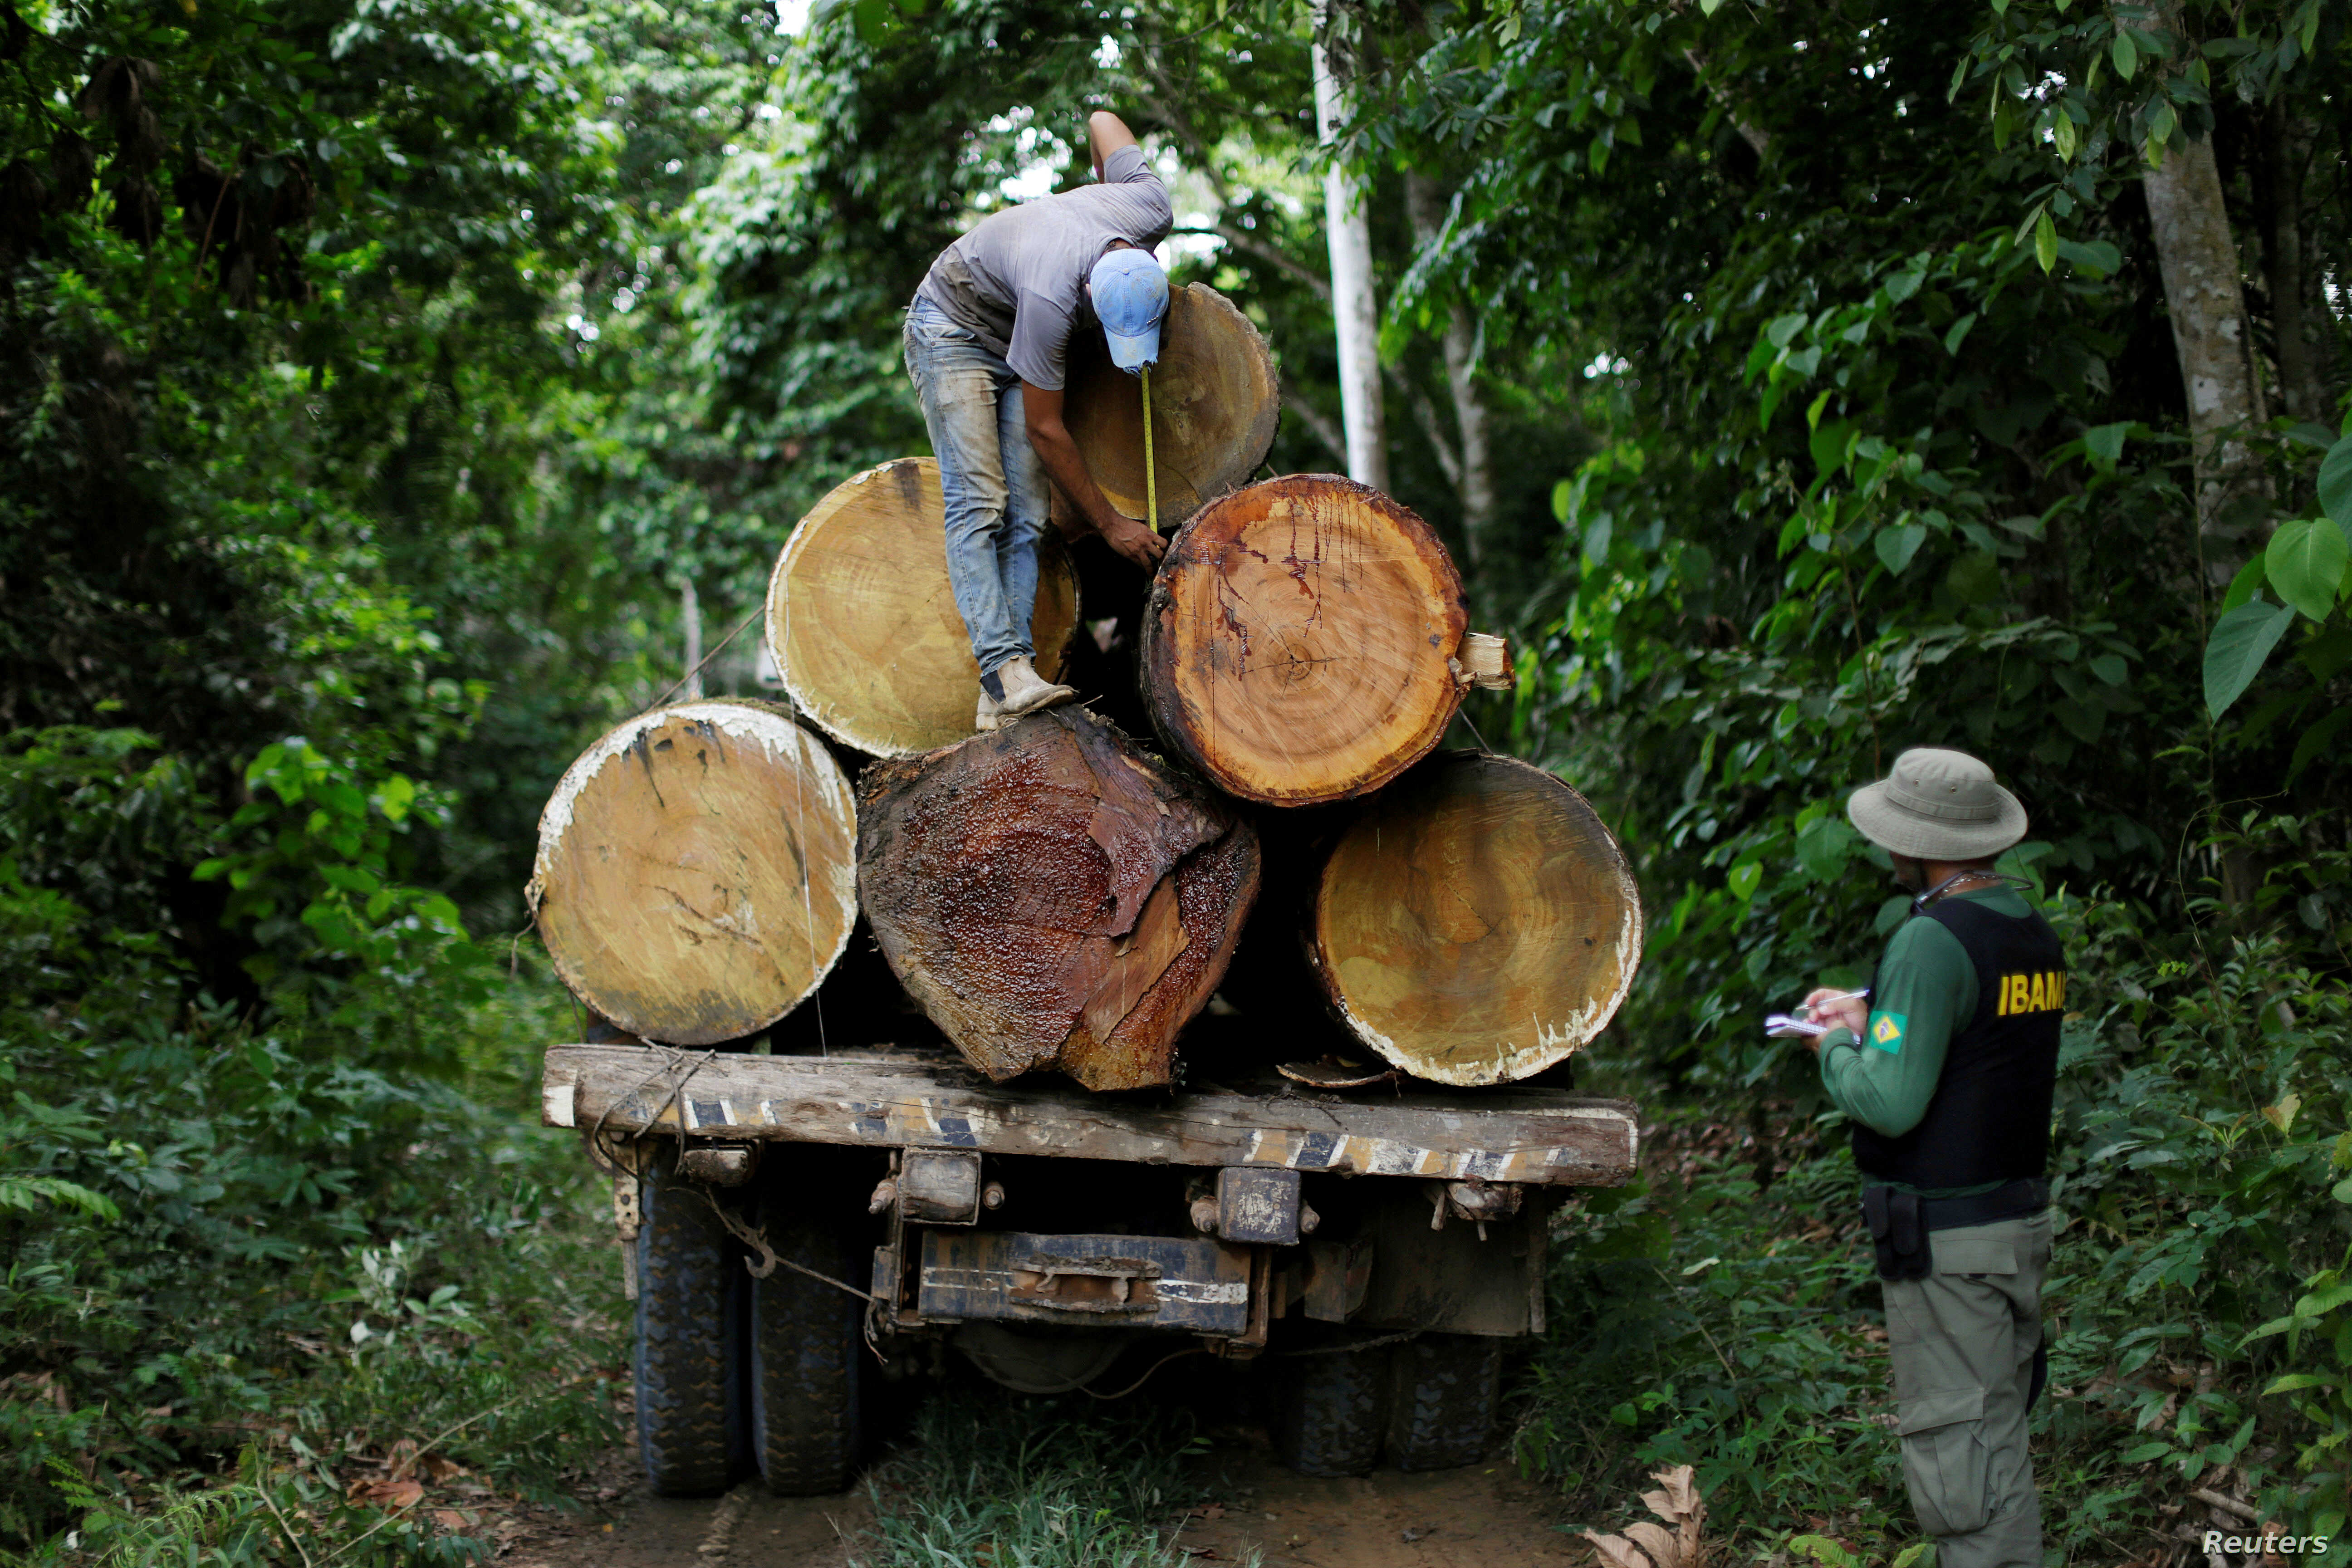 A Brazilian Institute for the Environment and Renewable Natural Resources agent measures a tree trunk during an operation to combat illegal mining and logging in the municipality of Novo Progresso, Para State, northern Brazil, Nov. 11, 2016.